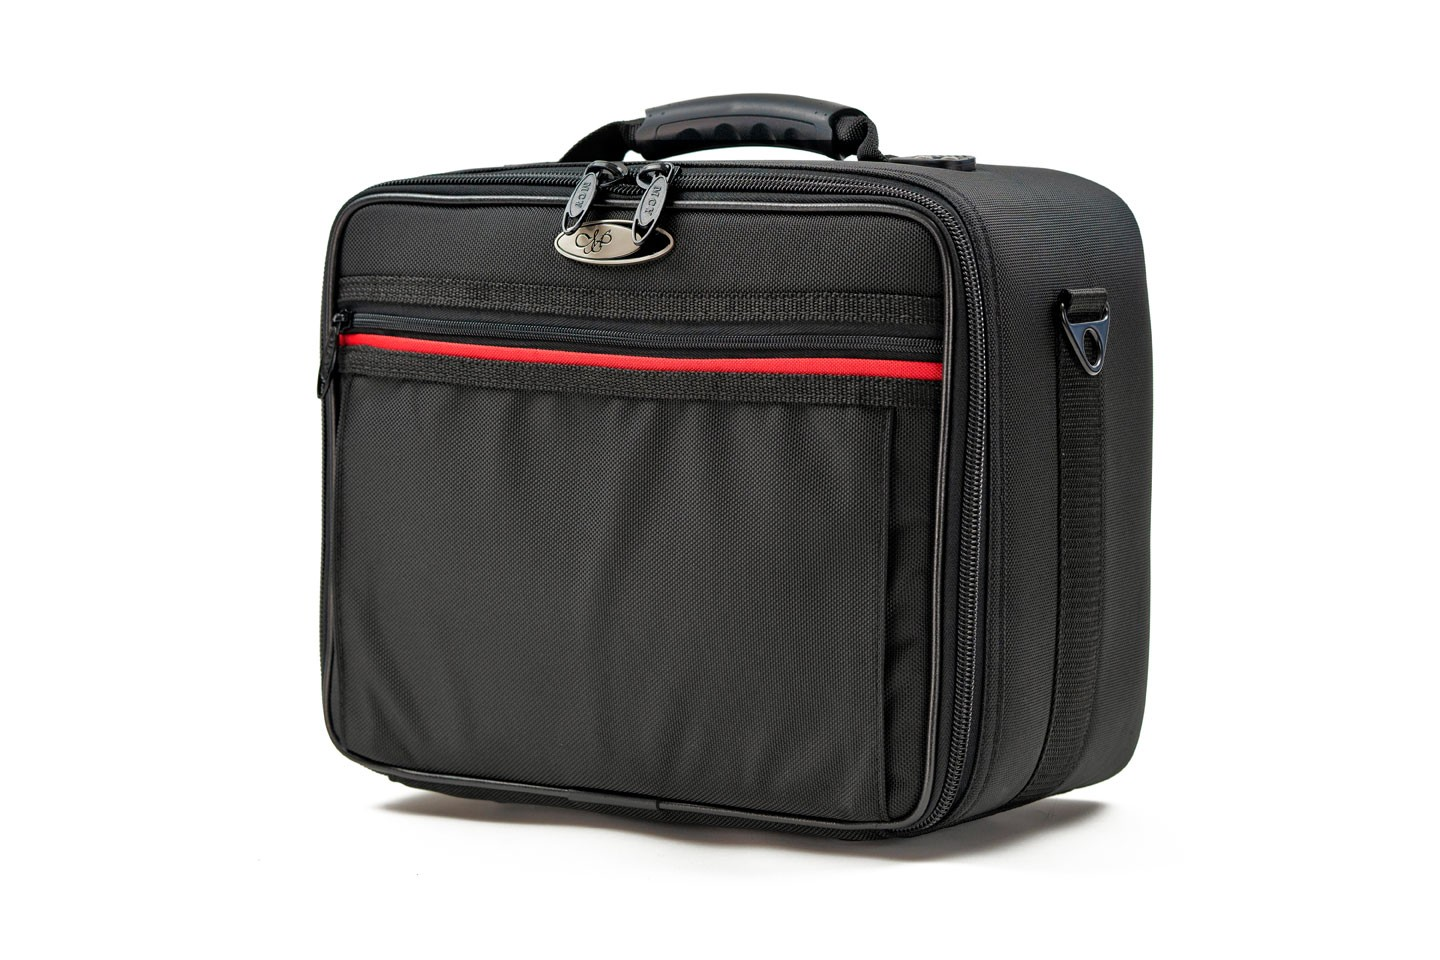 <h1>CAMCB-01</h1><p>Small Professional Camera Bag</p>